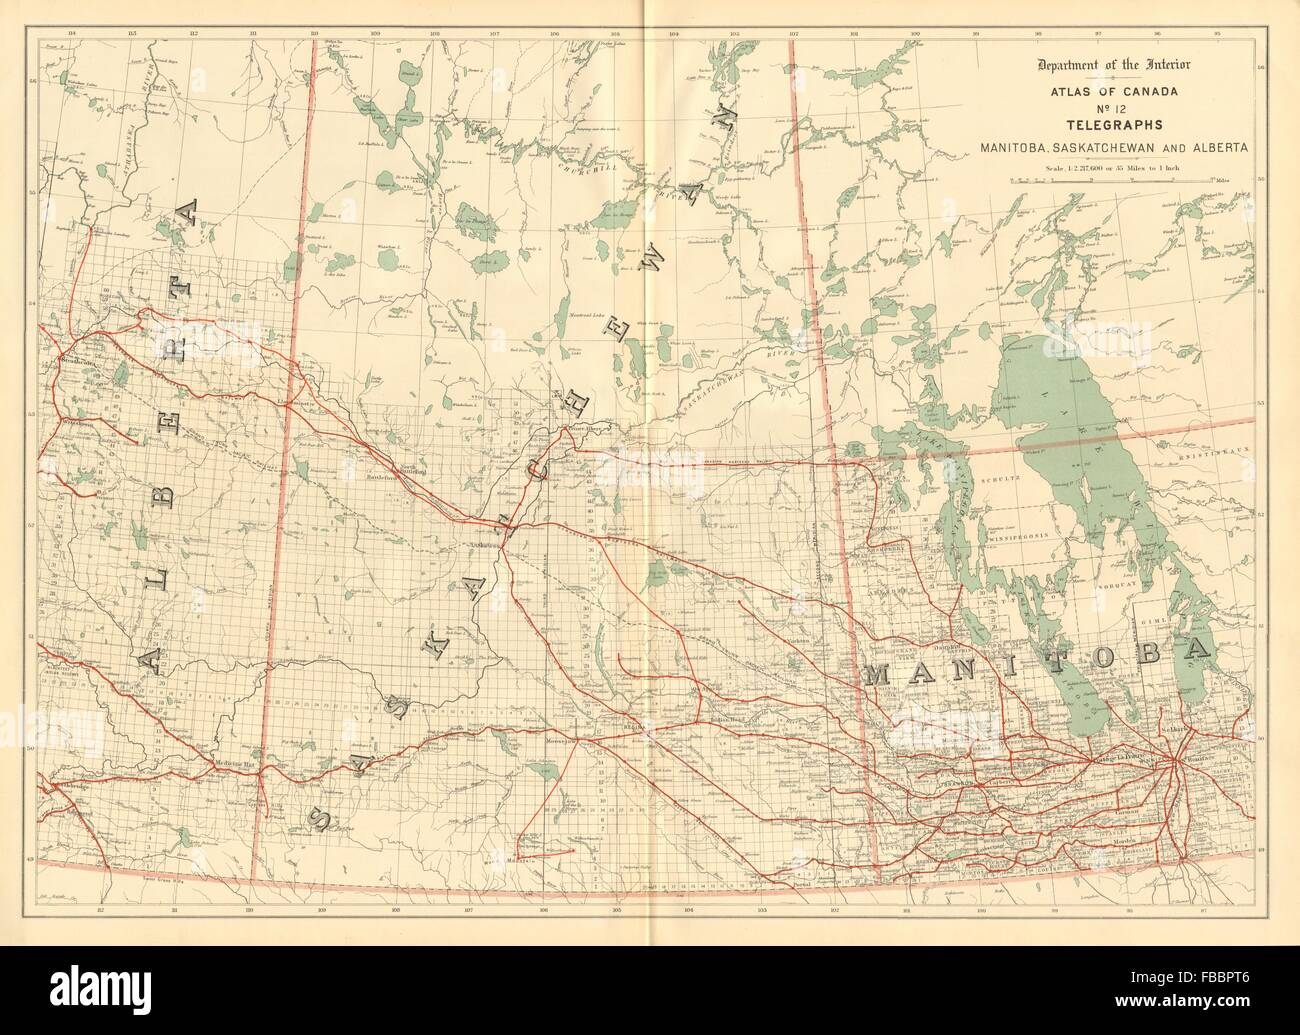 Manitoba saskatchewan and alberta telegraph cables canada white manitoba saskatchewan and alberta telegraph cables canada white 1906 map gumiabroncs Choice Image